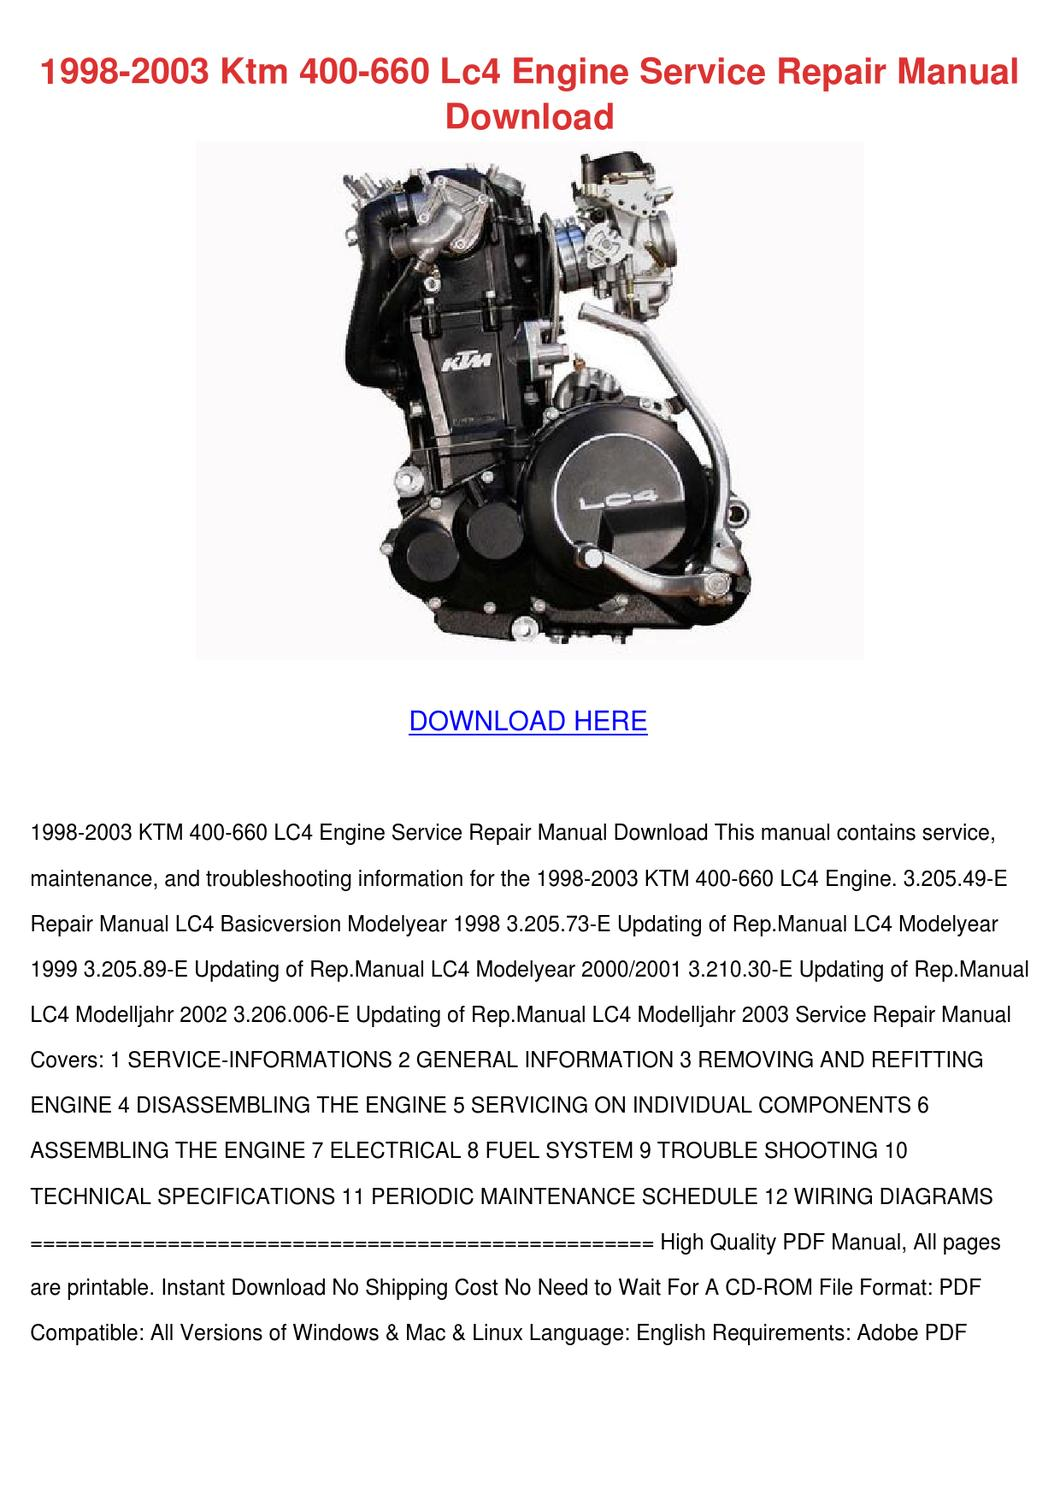 1998 2003 Ktm 400 660 Lc4 Engine Service Repa By Kimheim Issuu Wiring Diagrams